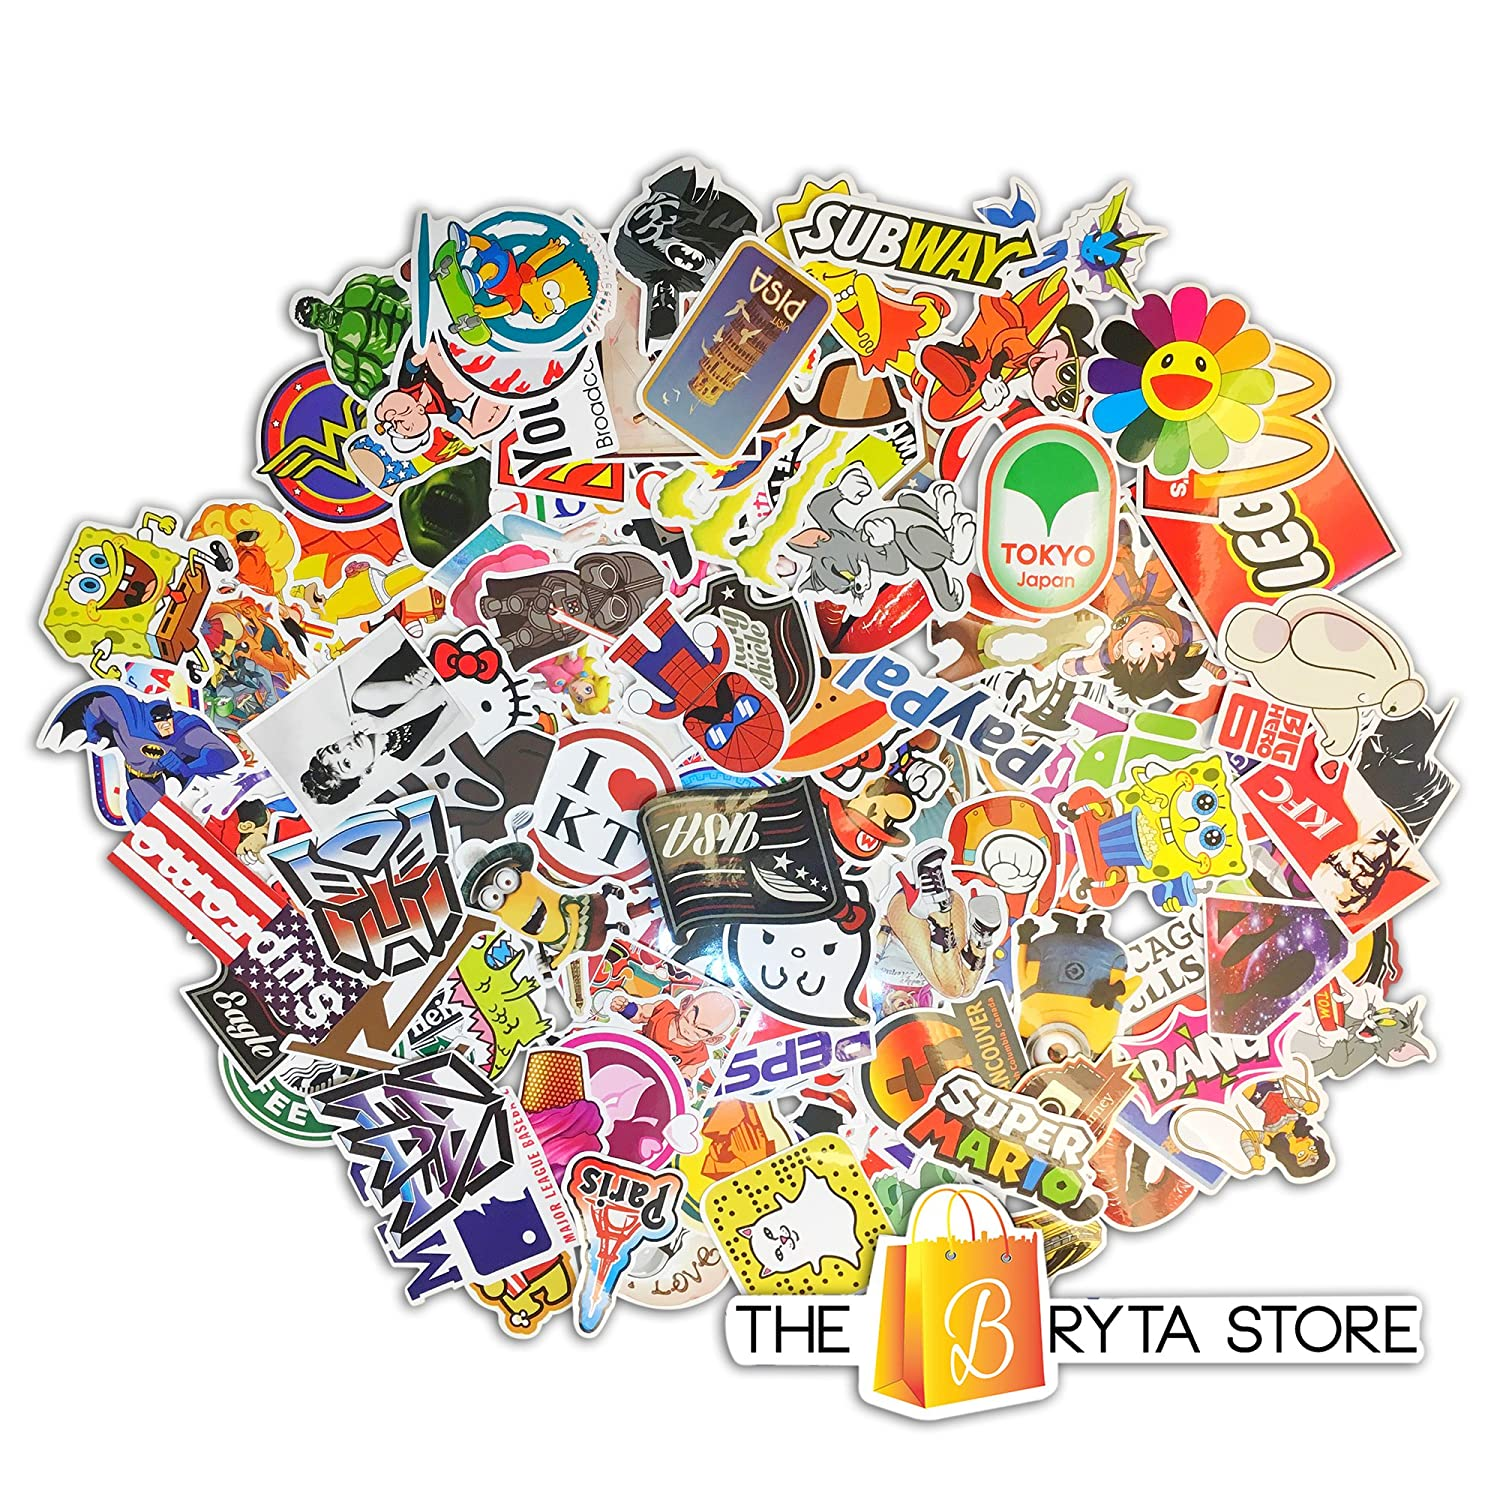 Stickers decals vinyls pack of the best selling quality sticker perfect to graffiti your laptop skateboard luggage car bumper bike hard hat